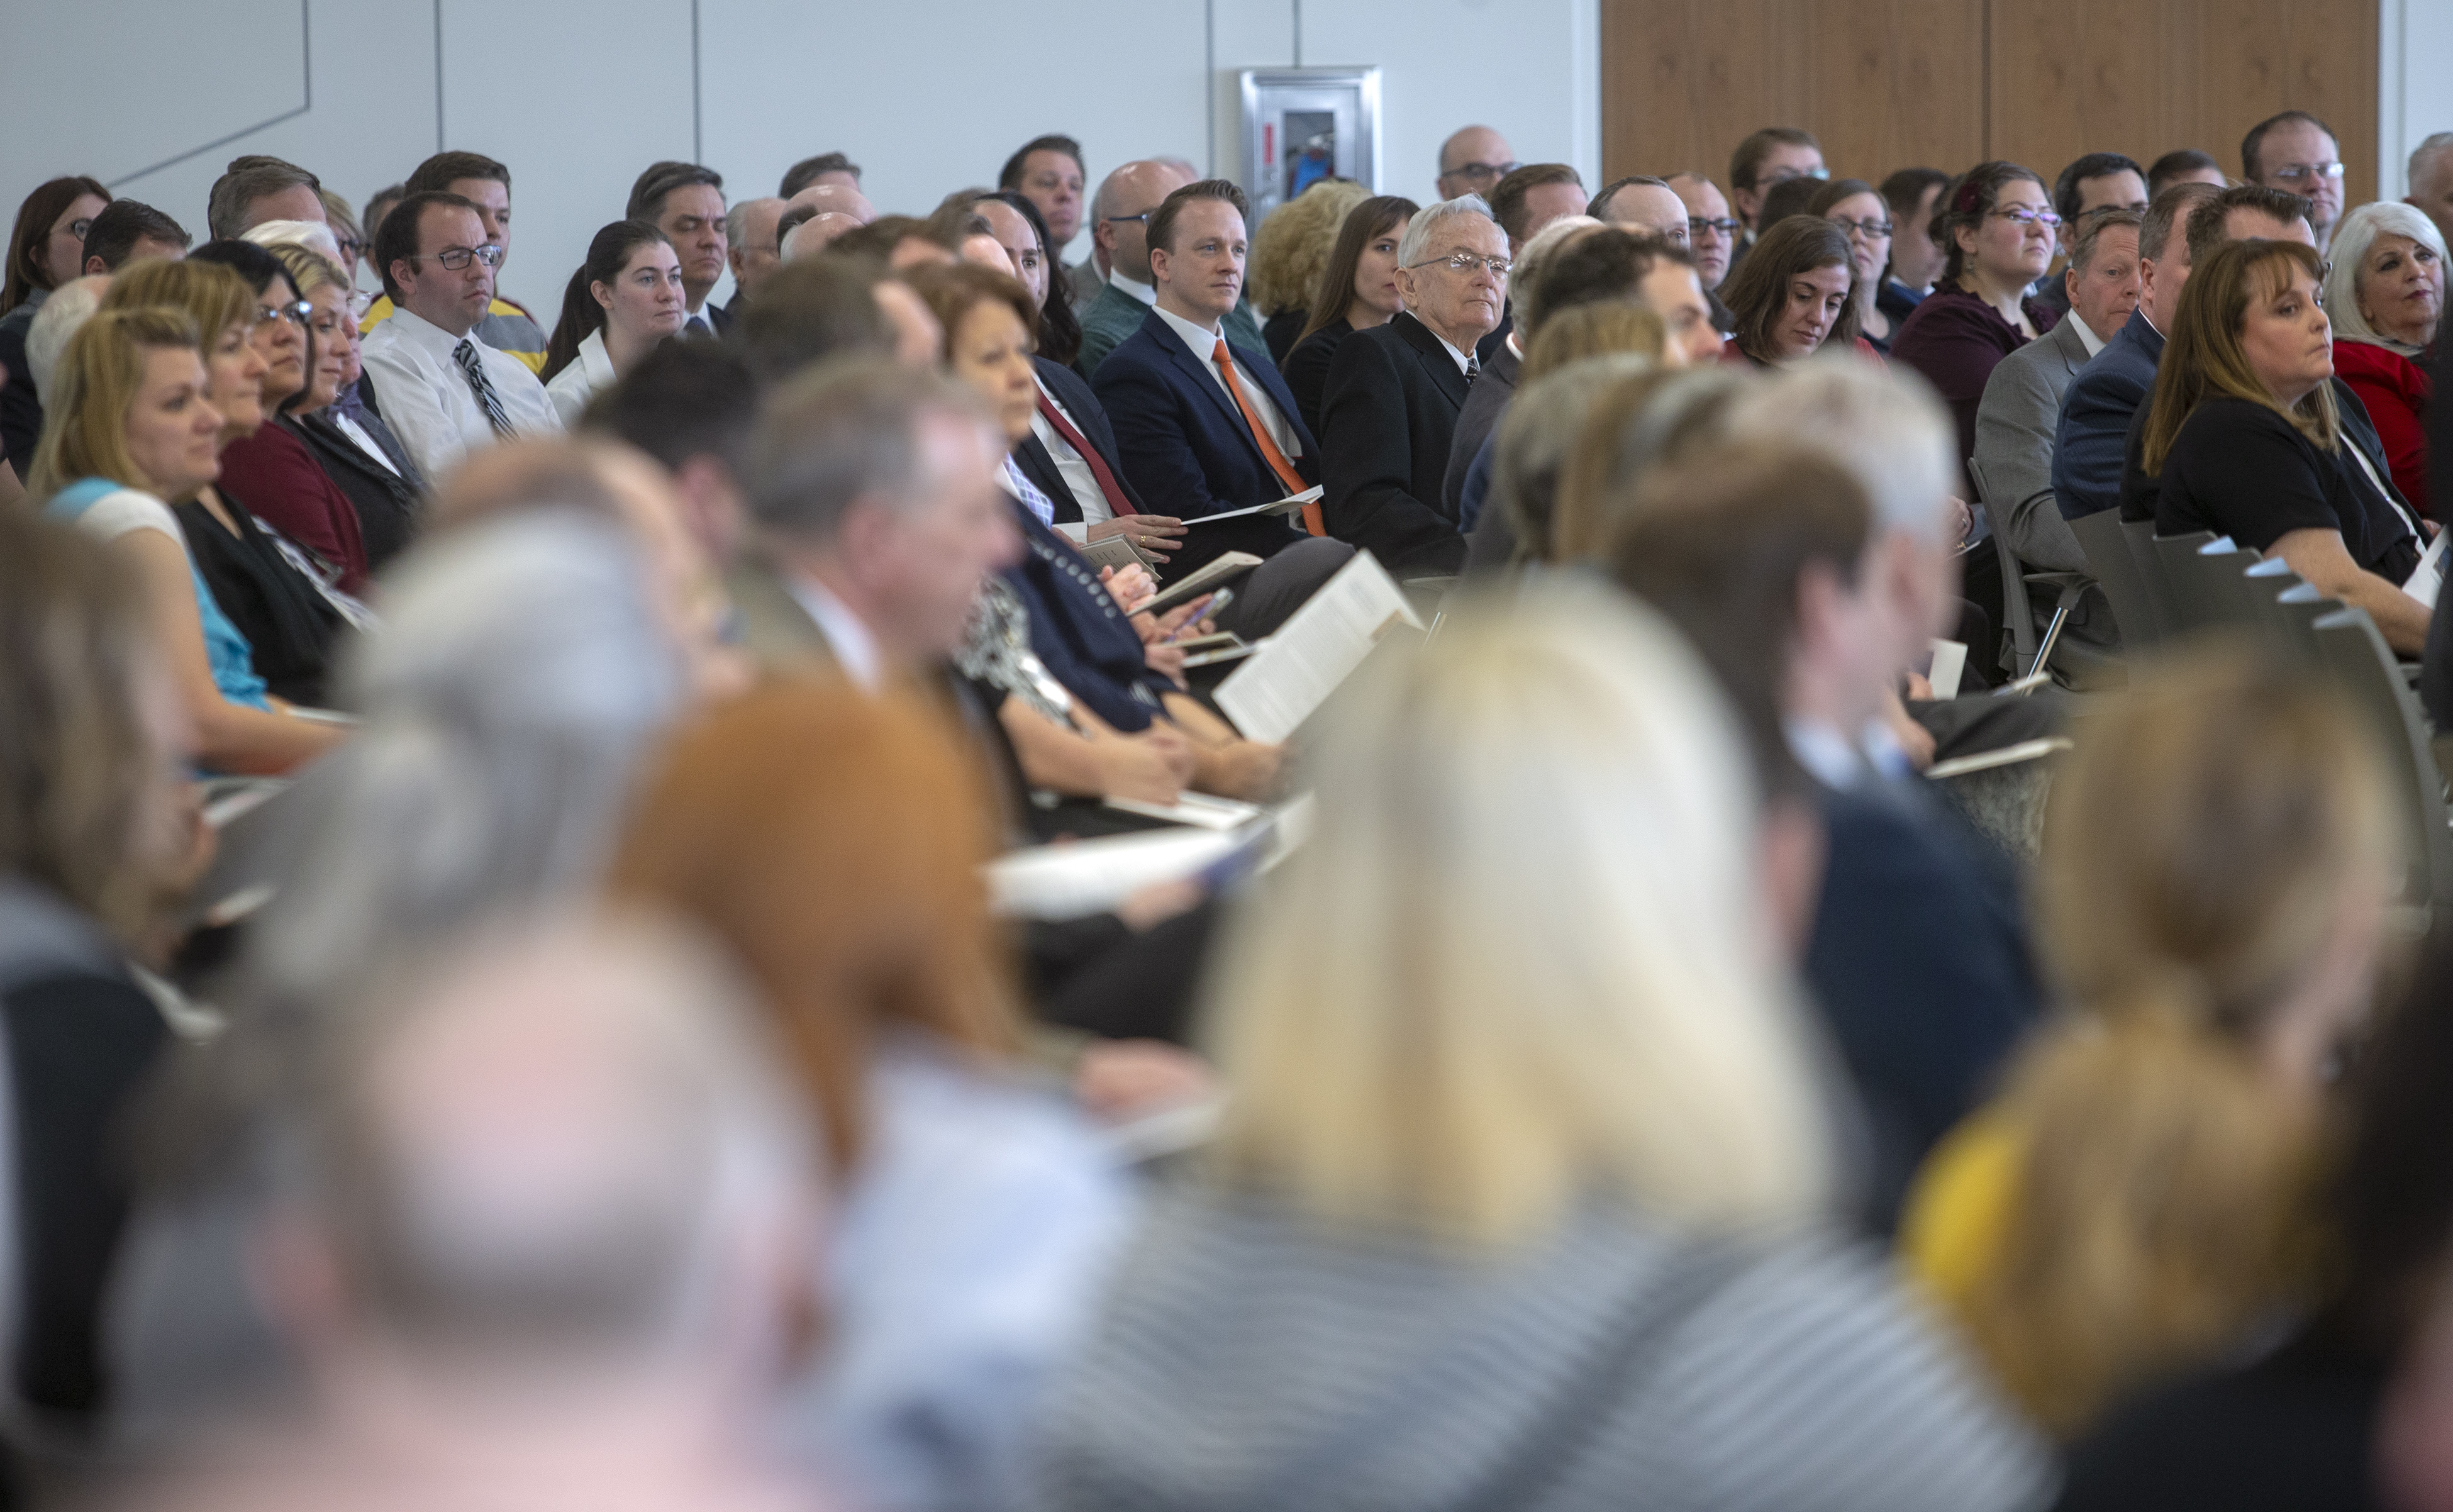 Audience members listen as Elder Ulisses Soares of the Quorum of the Twelve Apostles gives a short speech before giving the rededication prayer for the Caroline Hemenway Harman Building at BYU in Provo, Utah, on Tuesday, Feb. 5, 2019.